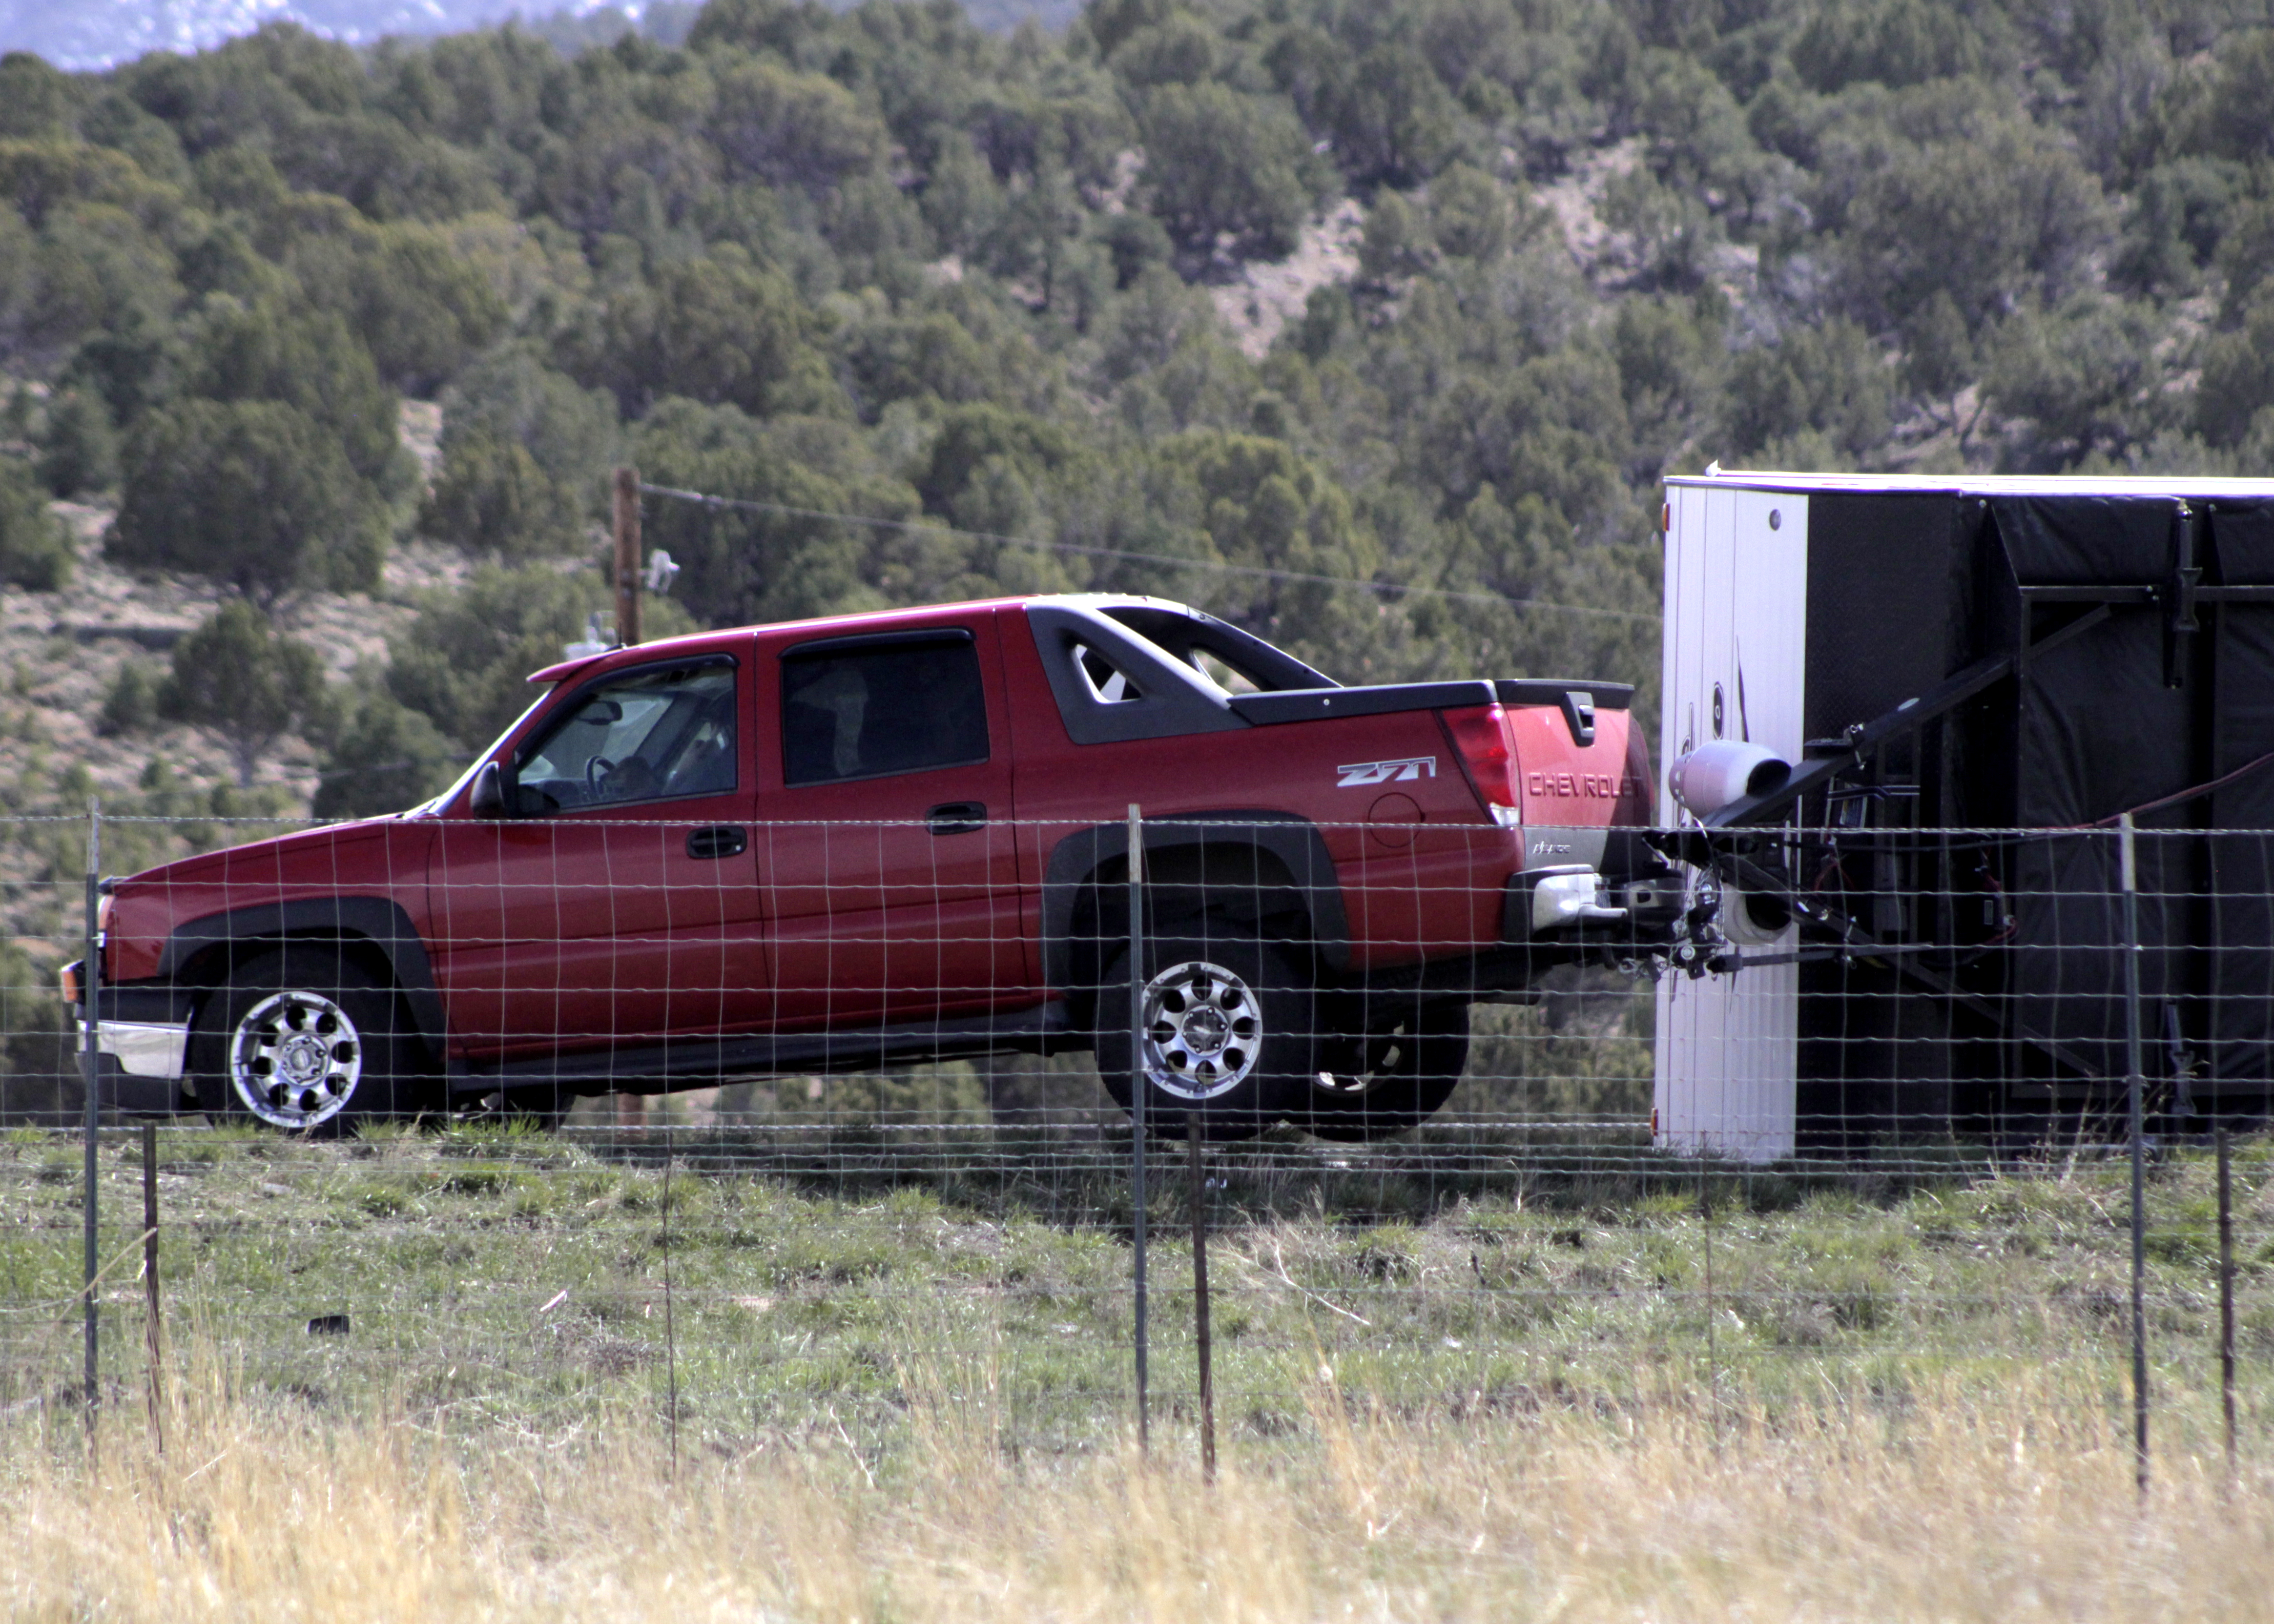 High winds whip trailers roll – St George News